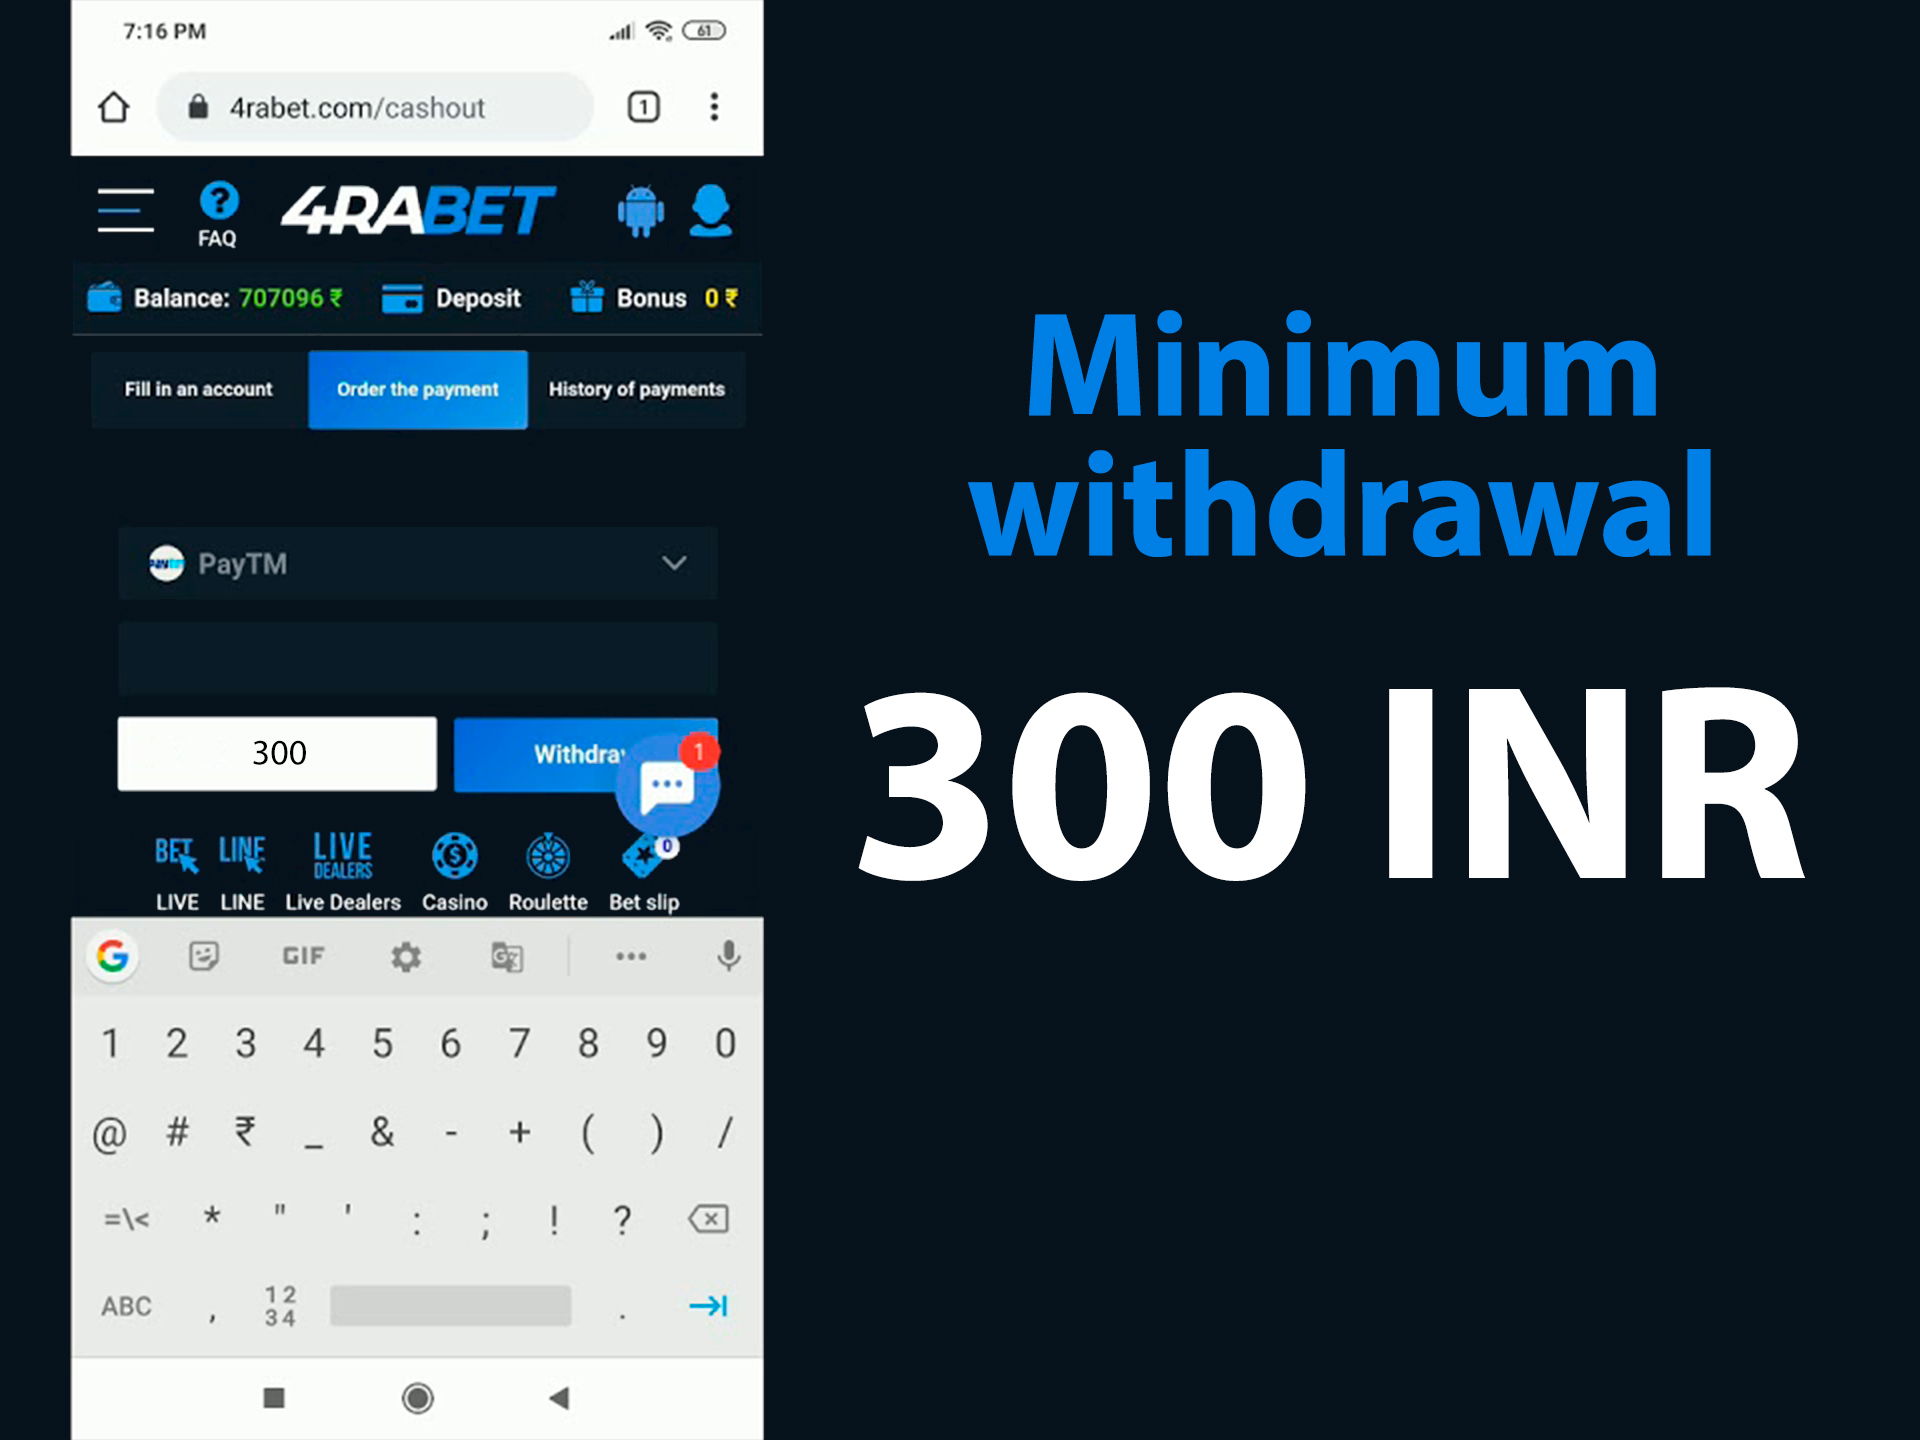 The minimum withdrawal limit is 300 INR, and the maximum is 10,000 INR.